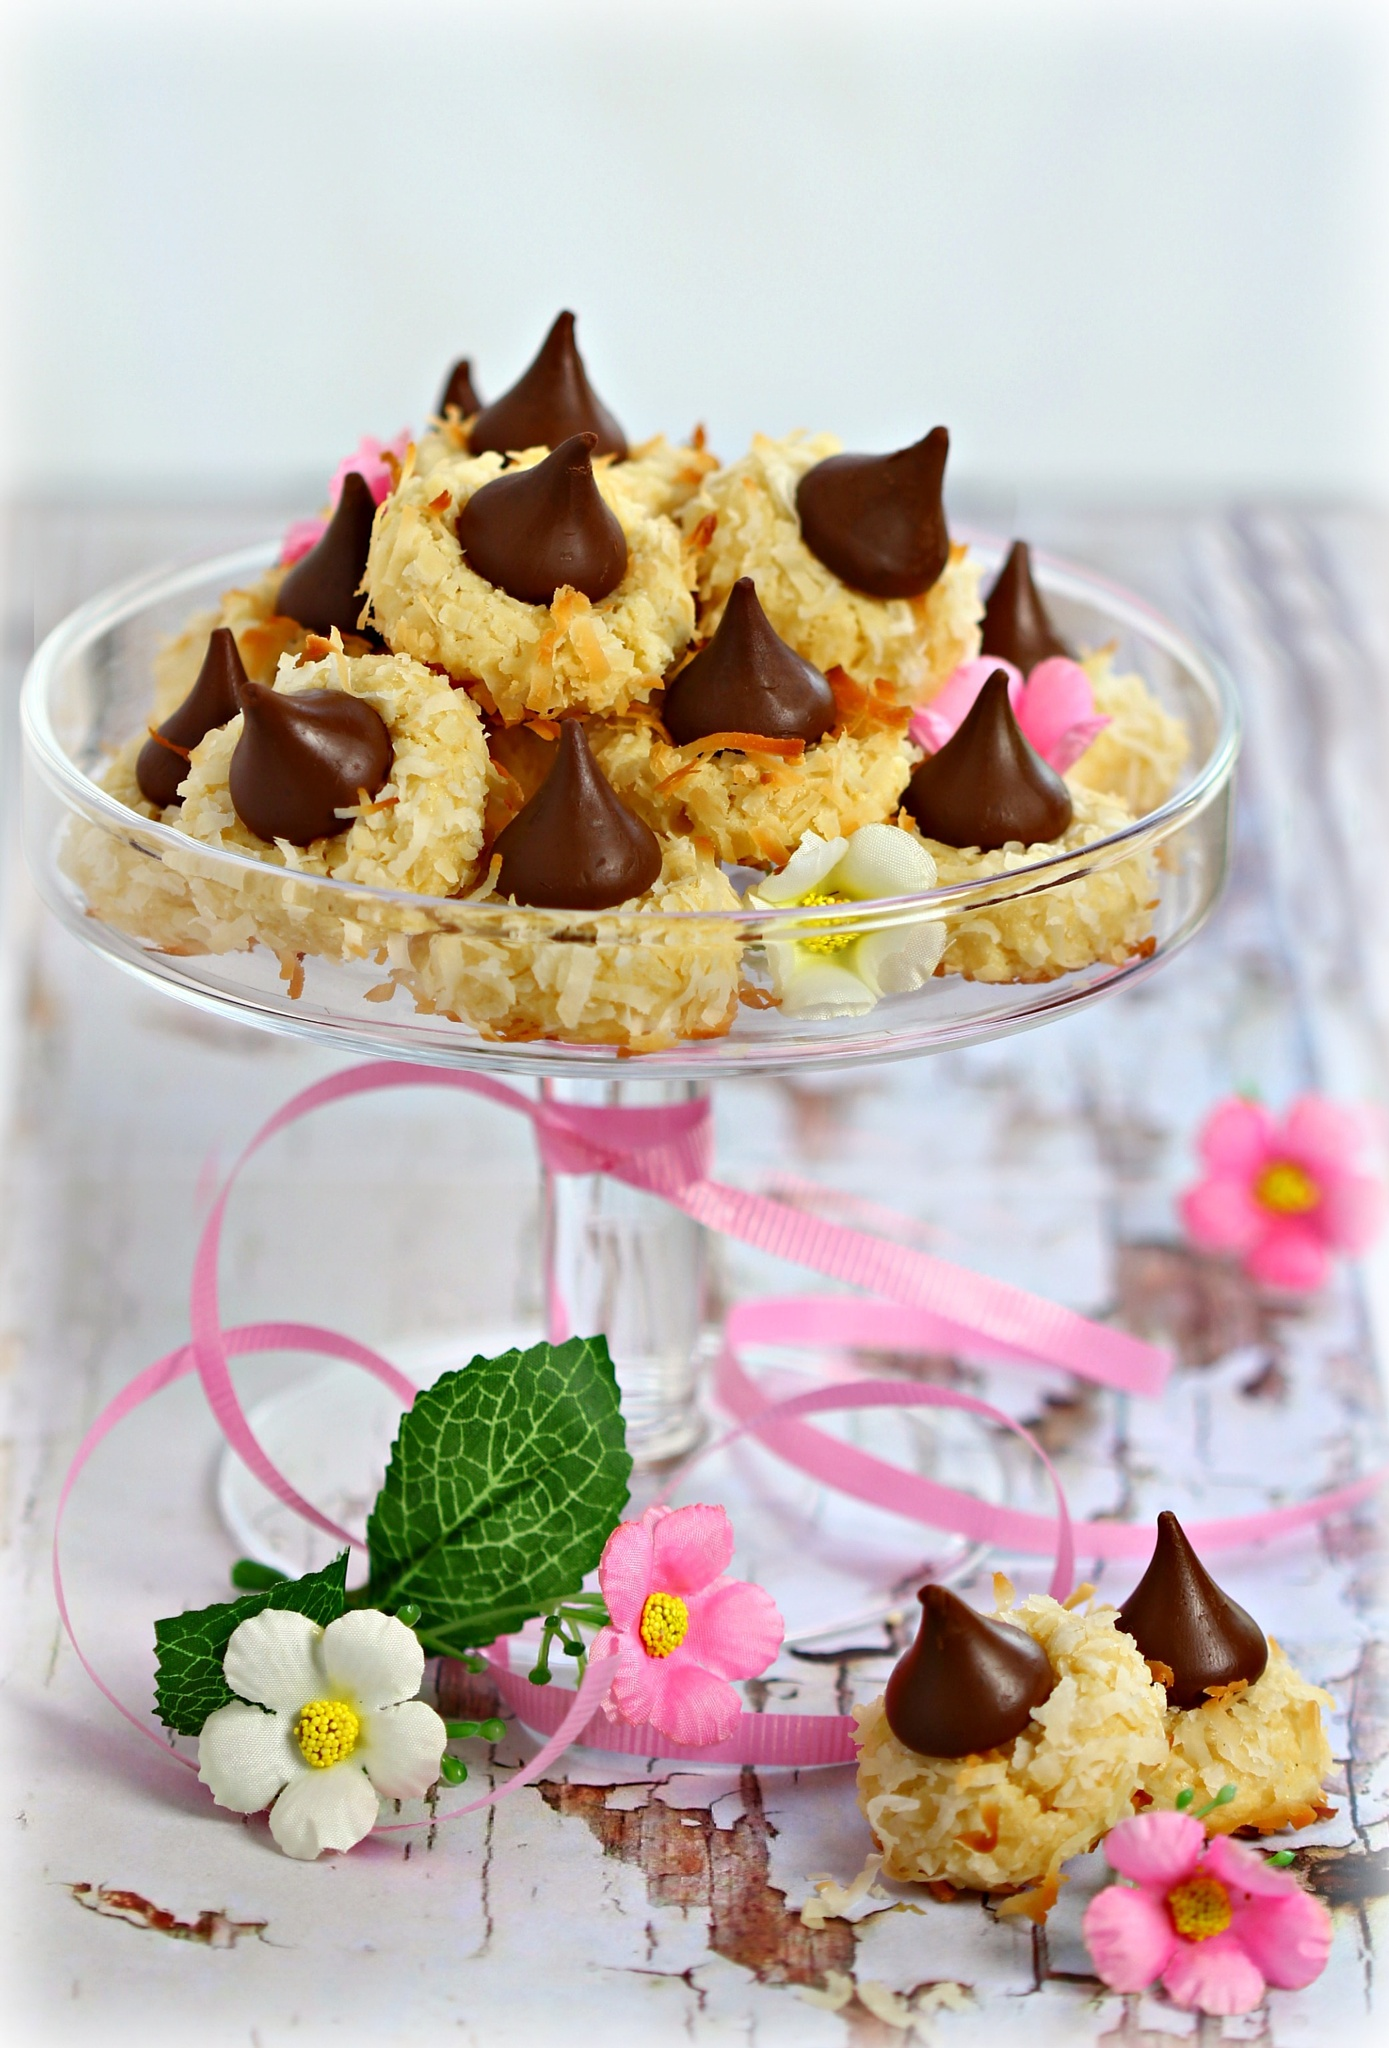 coconut kisses cookies by Nisreen Rahhal